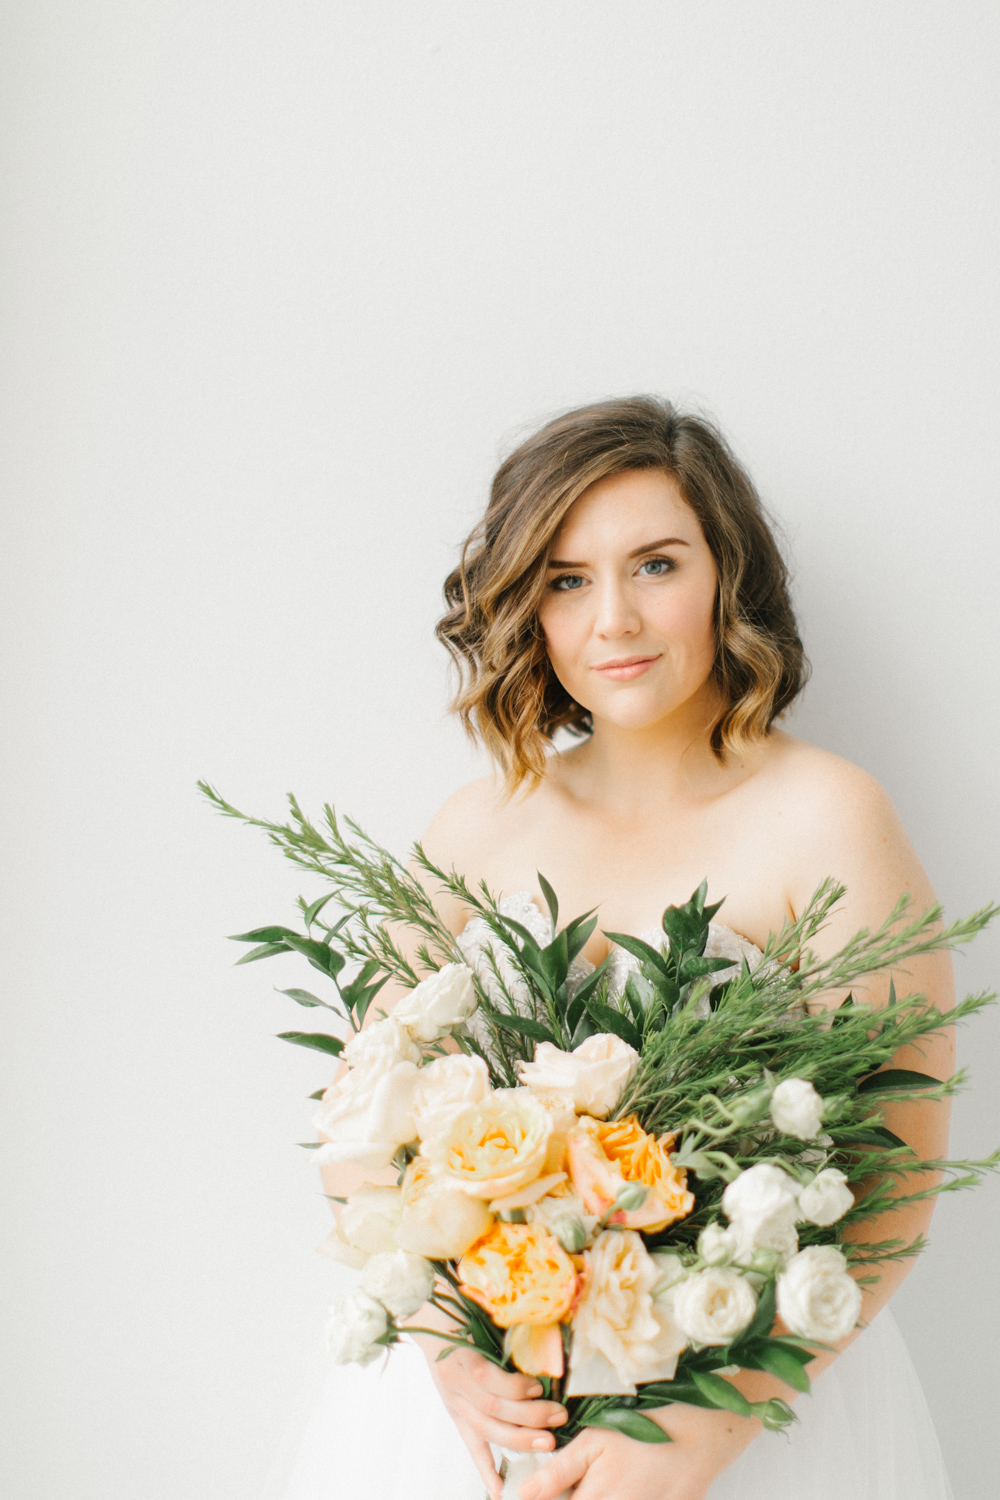 Seattle Fine Art Wedding Photographer | Seattle Downtown White Studio Bridal Session | Stunning Wedding Bouquet | Seattle Bride | Seattle Wedding | Photography Studio Space | Emma Rose Company Wedding Photography-16.jpg